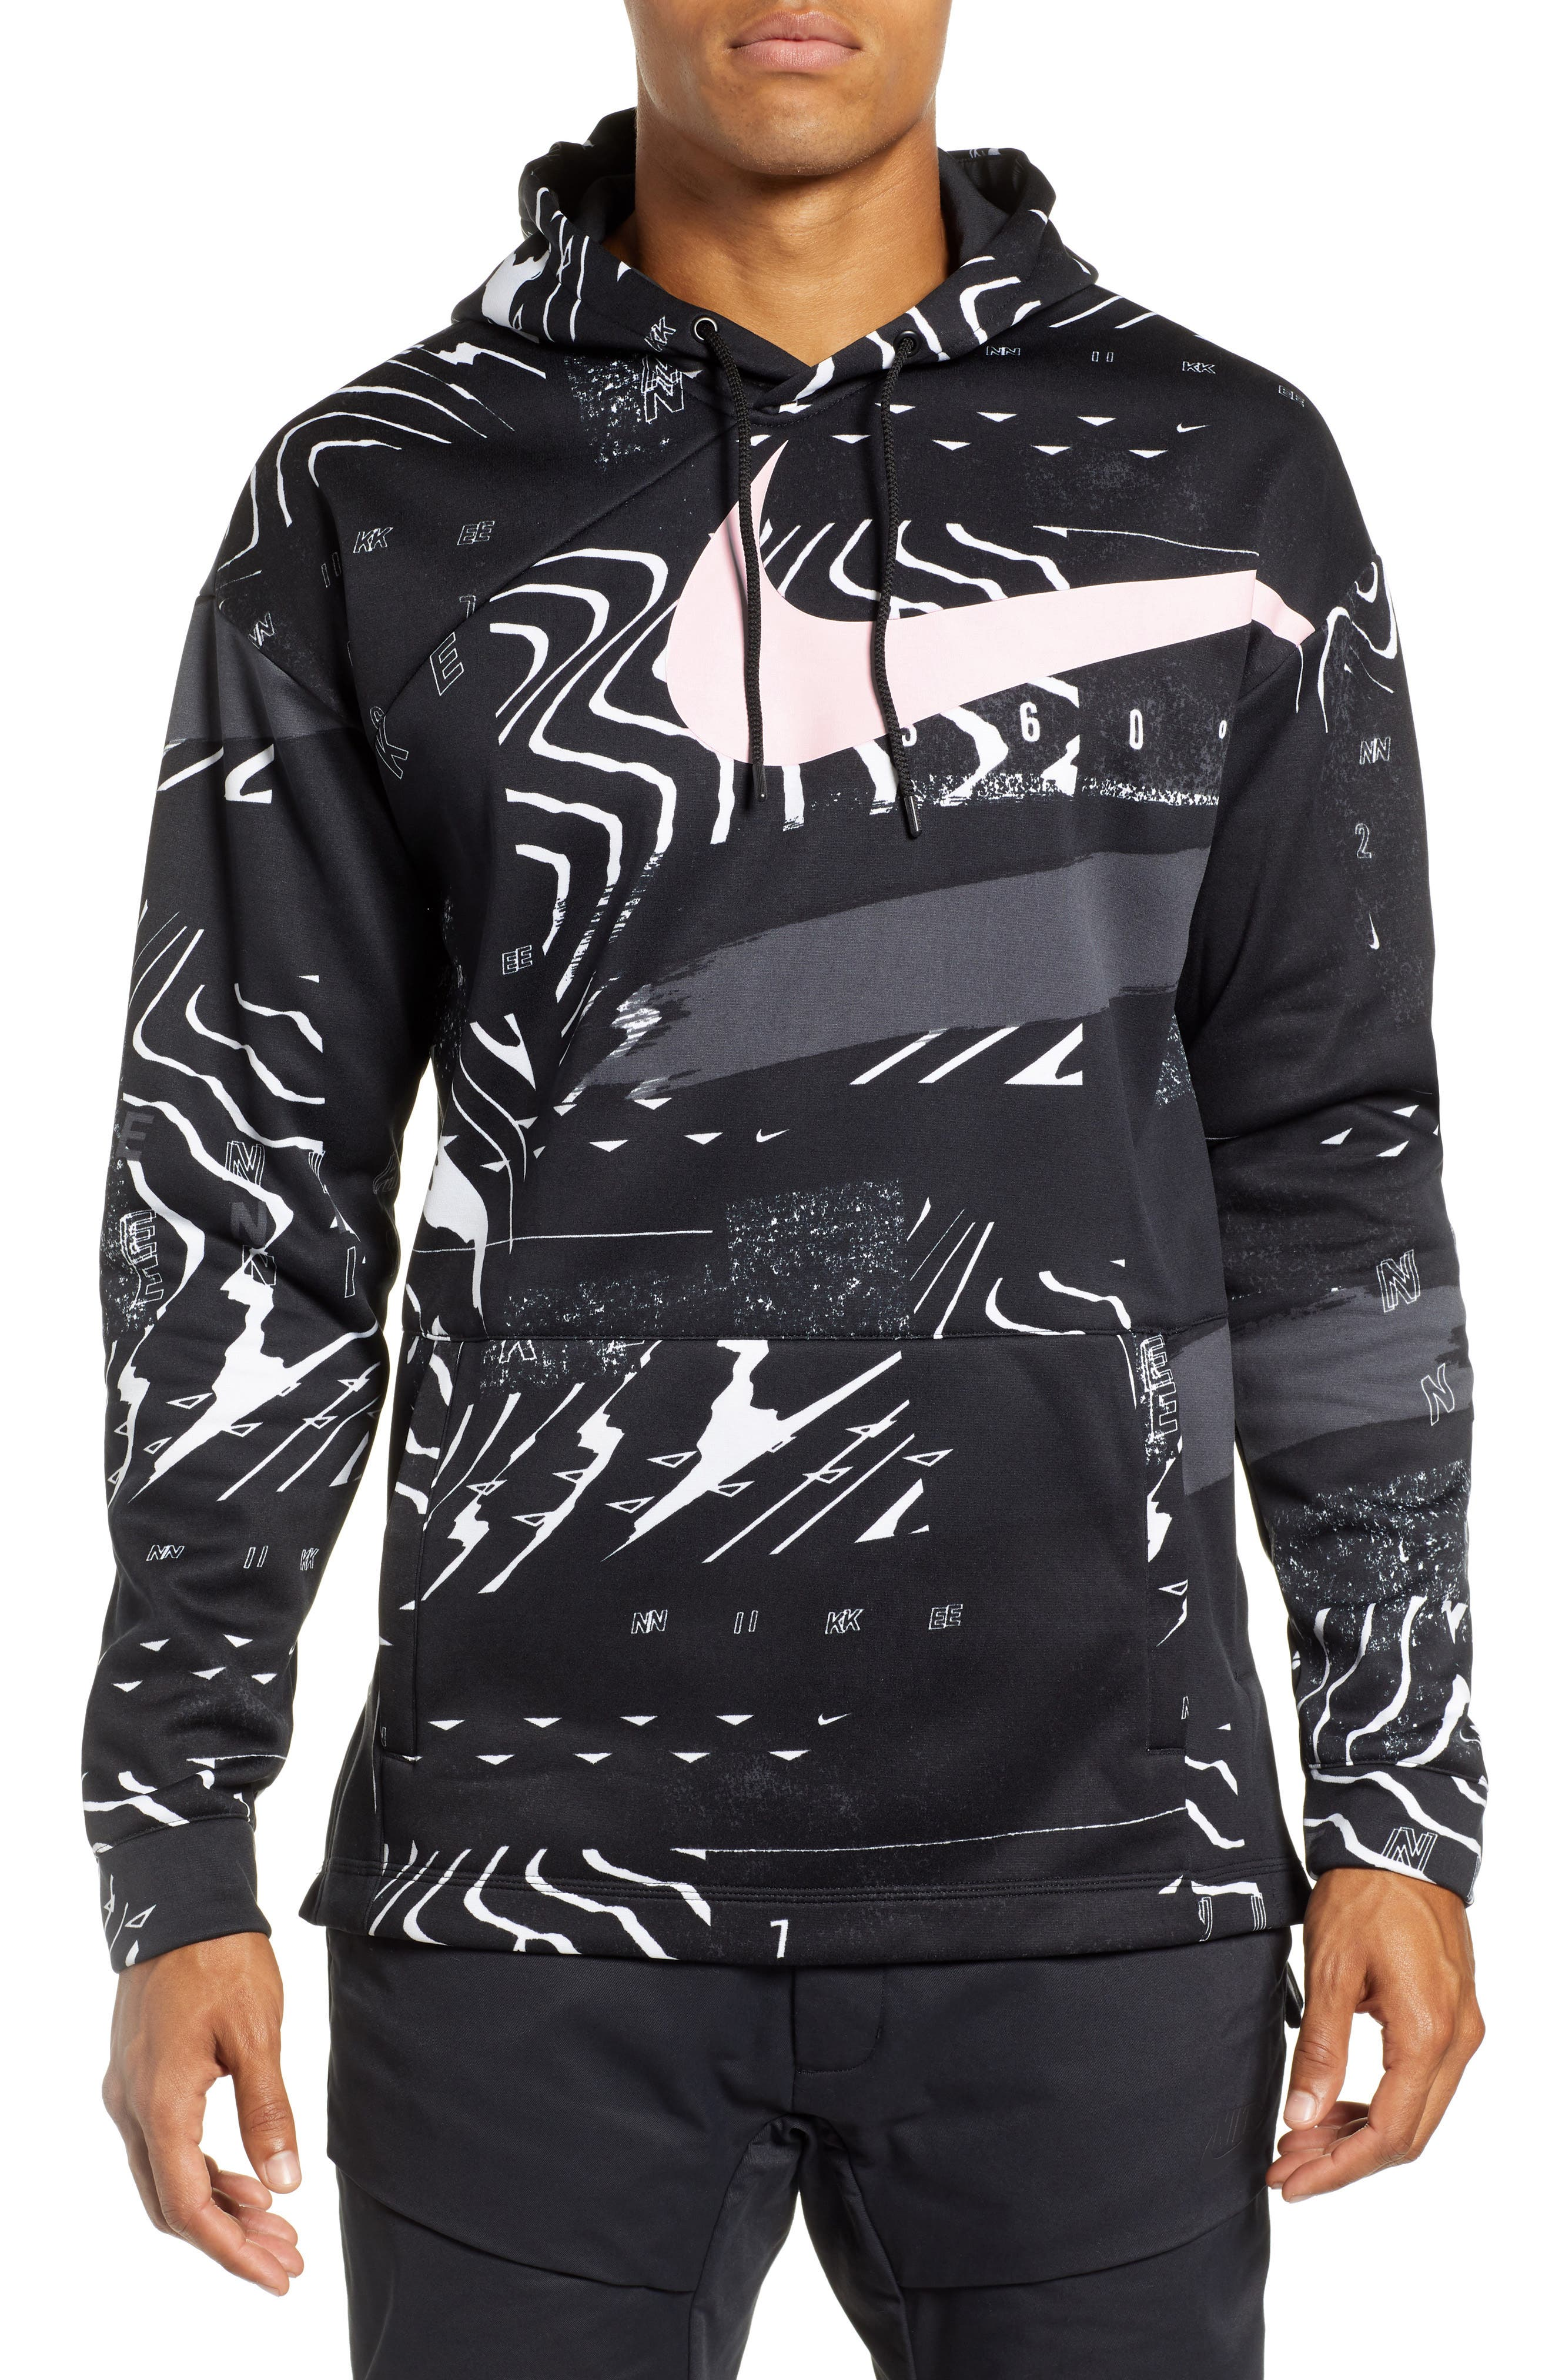 3.0 Therma-FIT Hoodie,                             Main thumbnail 1, color,                             BLACK/ WHITE/ PINK FOAM